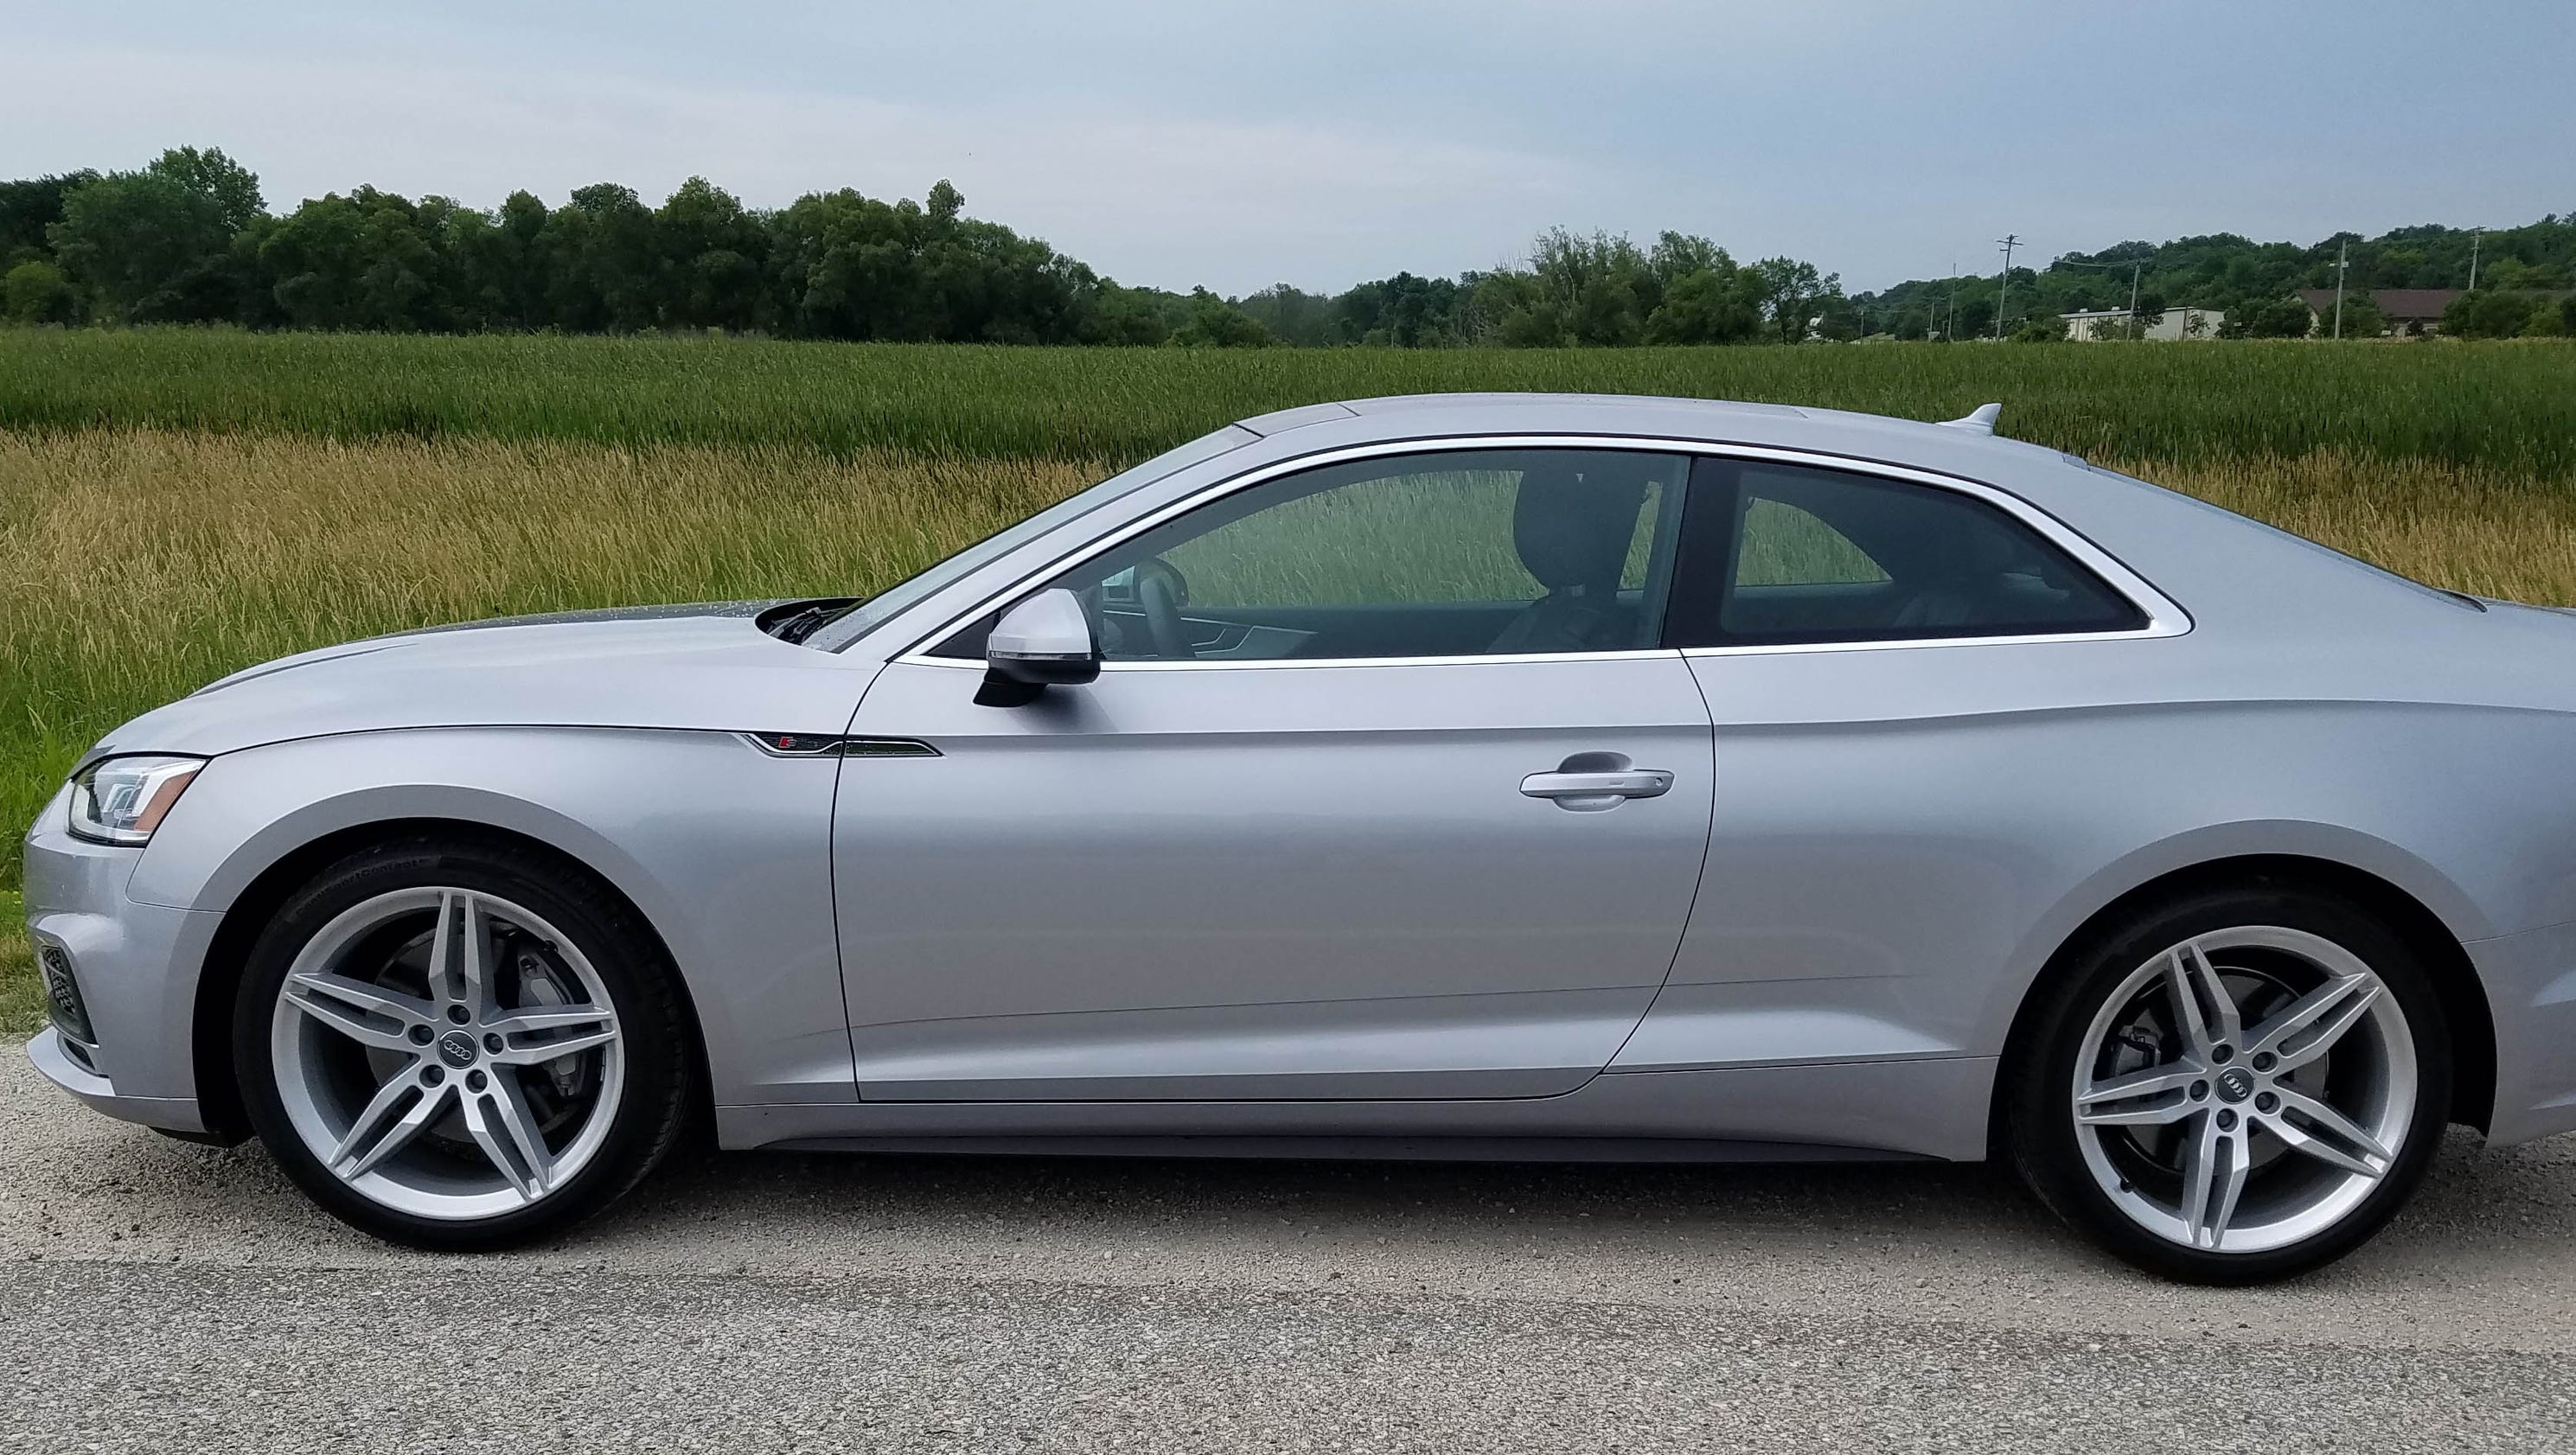 Savage on Wheels 2018 Audi A5 Coupe 2 0T Quattro